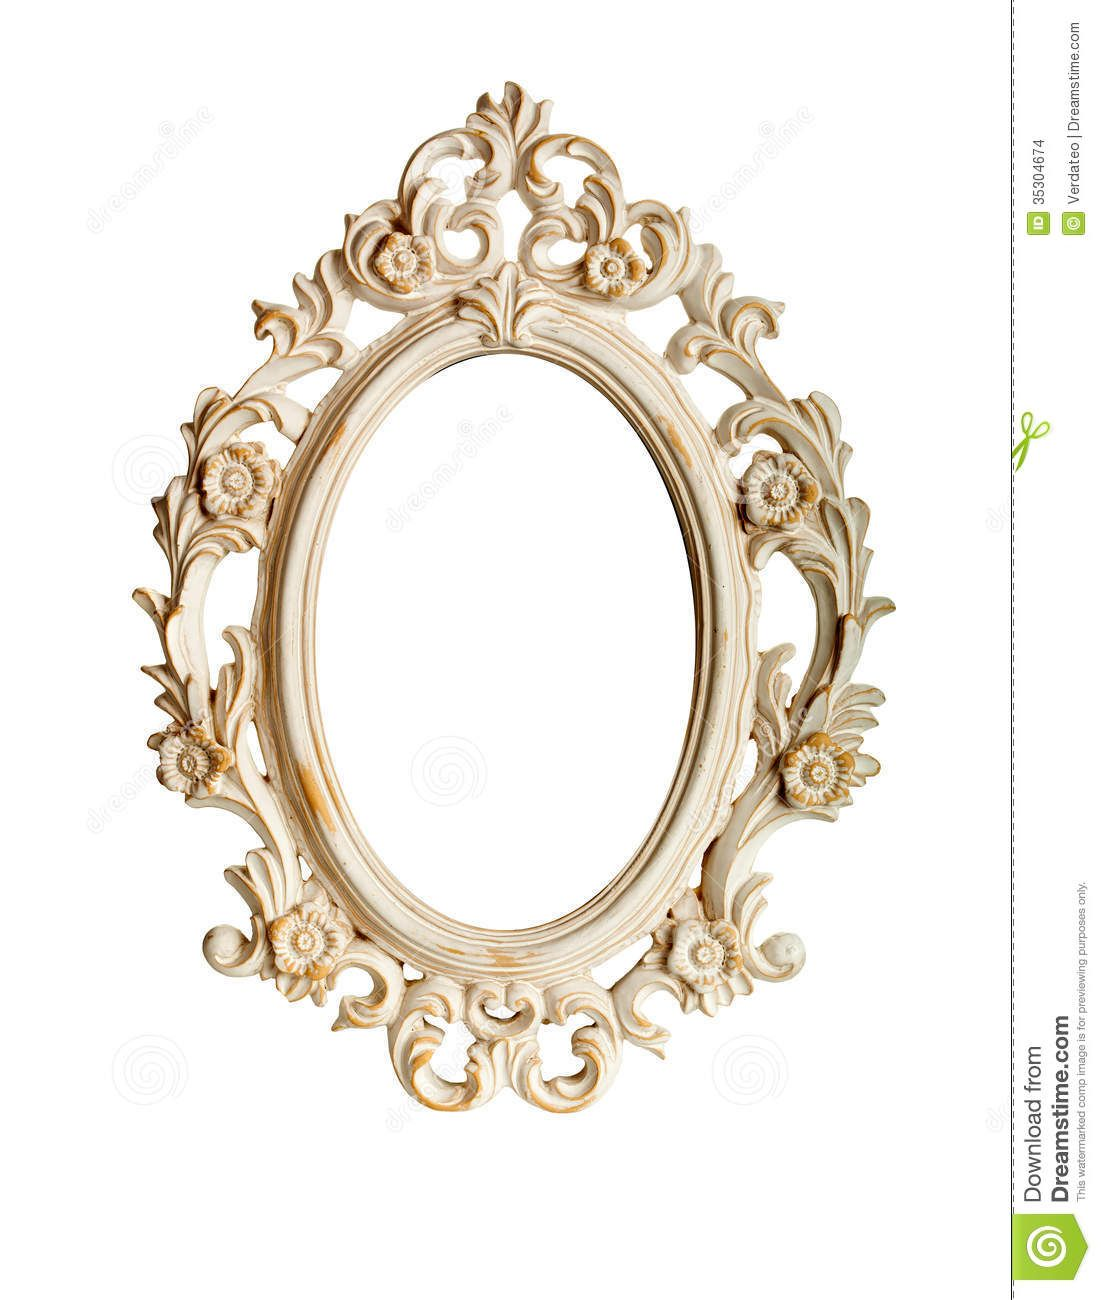 Ornate Gold Oval Frame